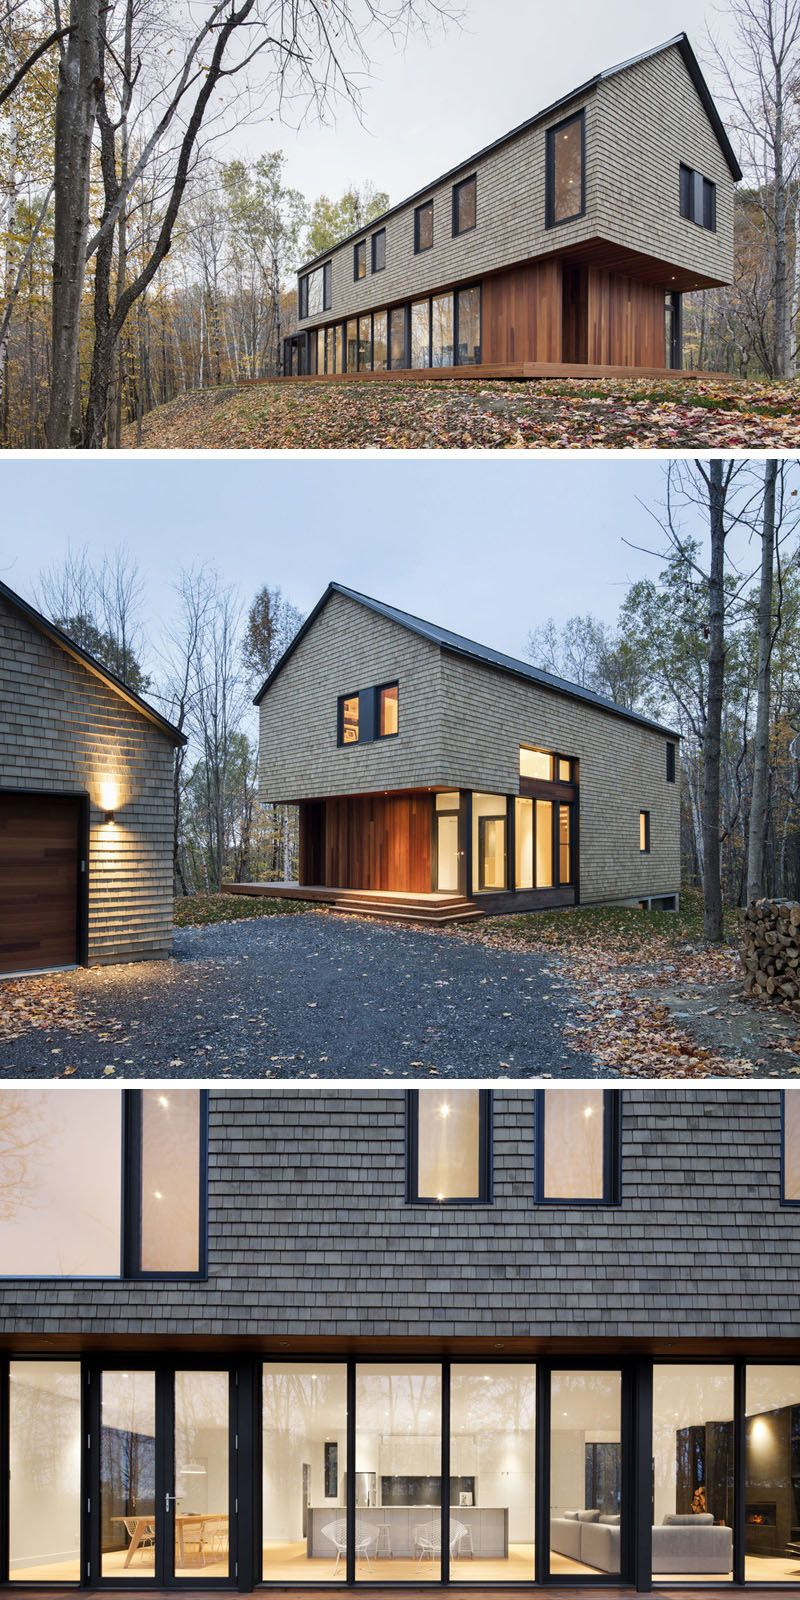 13 Examples Of Modern Houses With Wooden Shingles Cedar Shingle Siding Feels Perfect For A Home In A F Shingle House Cedar Shingle Siding Architecture House